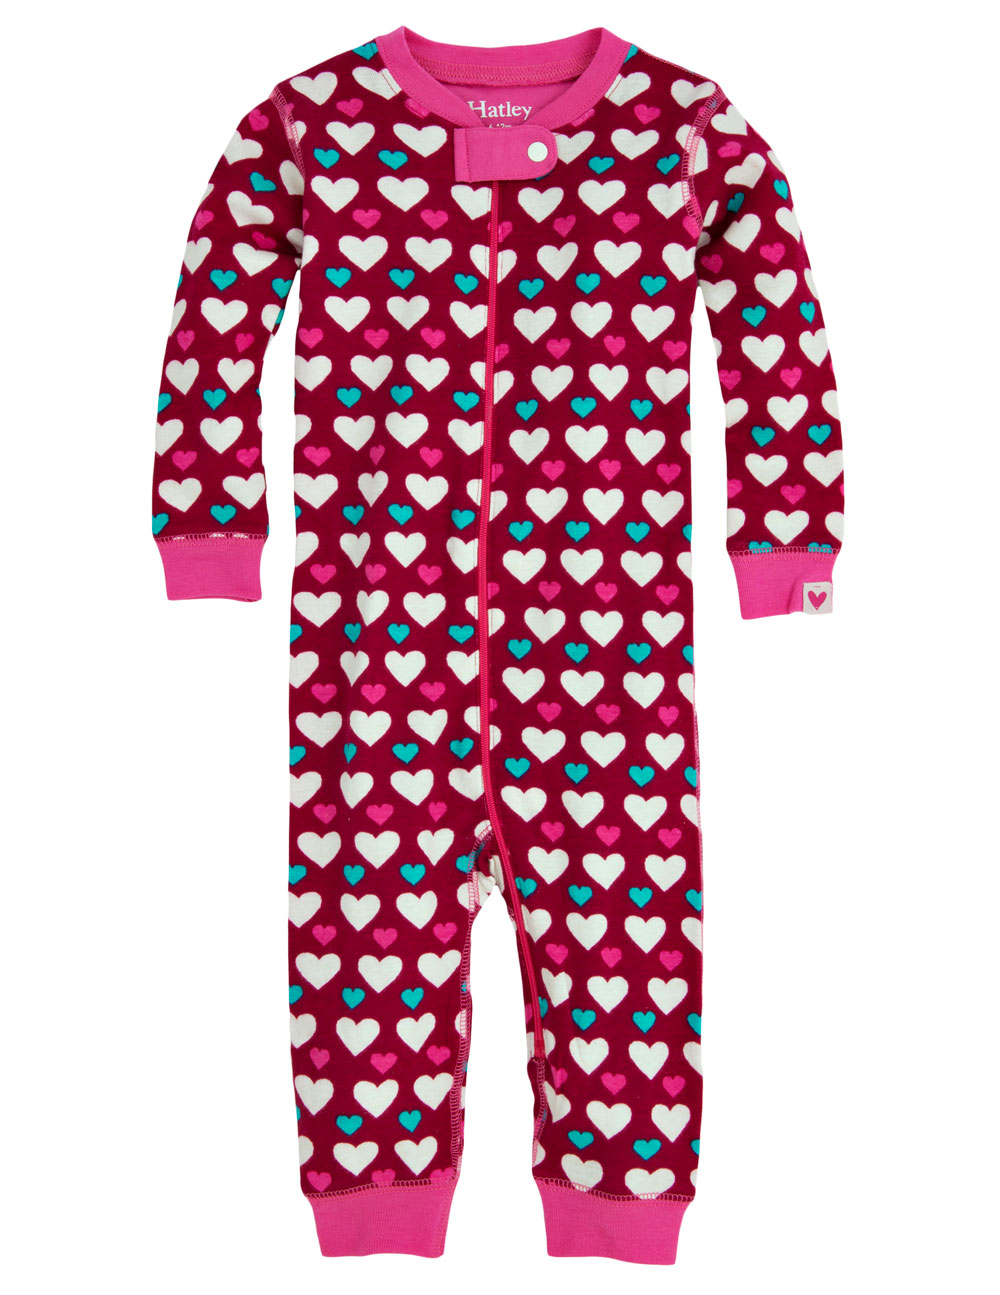 Hatley Babygro - Lots of Hearts - Footless